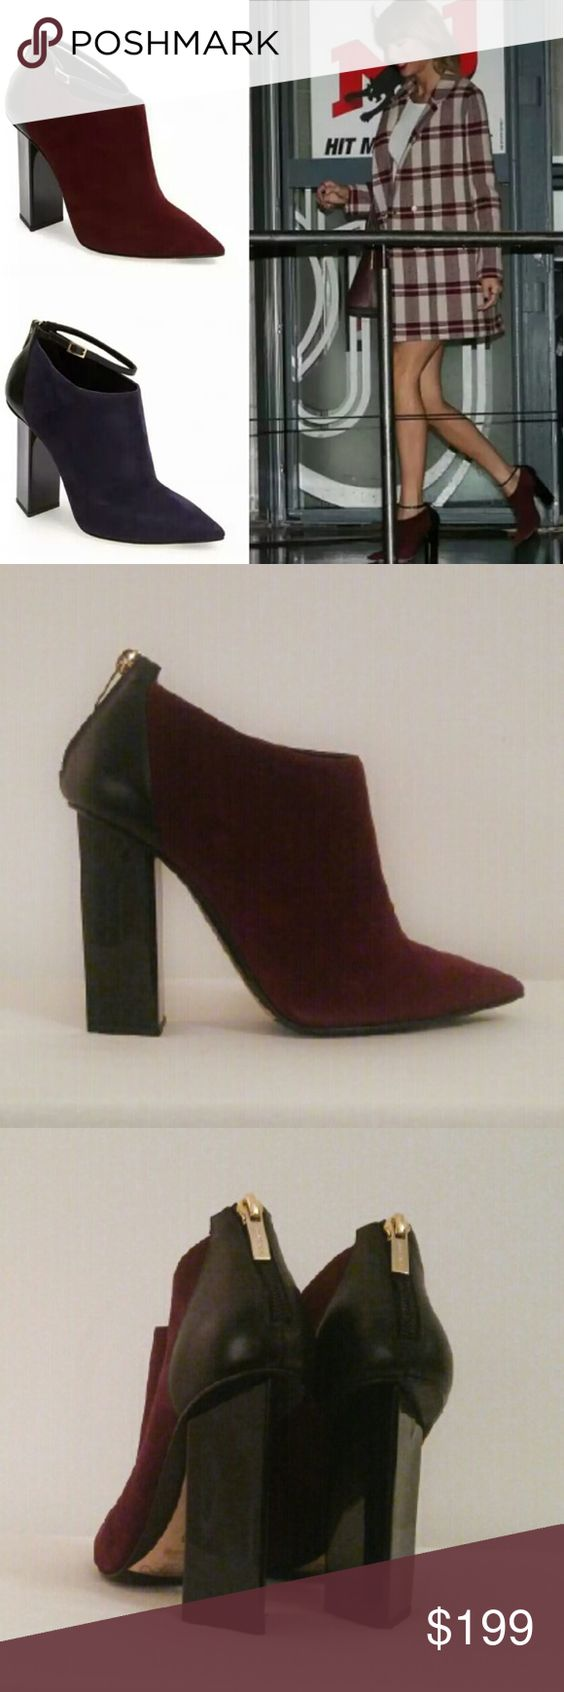 jimmy choo boots burgundy suede size 6